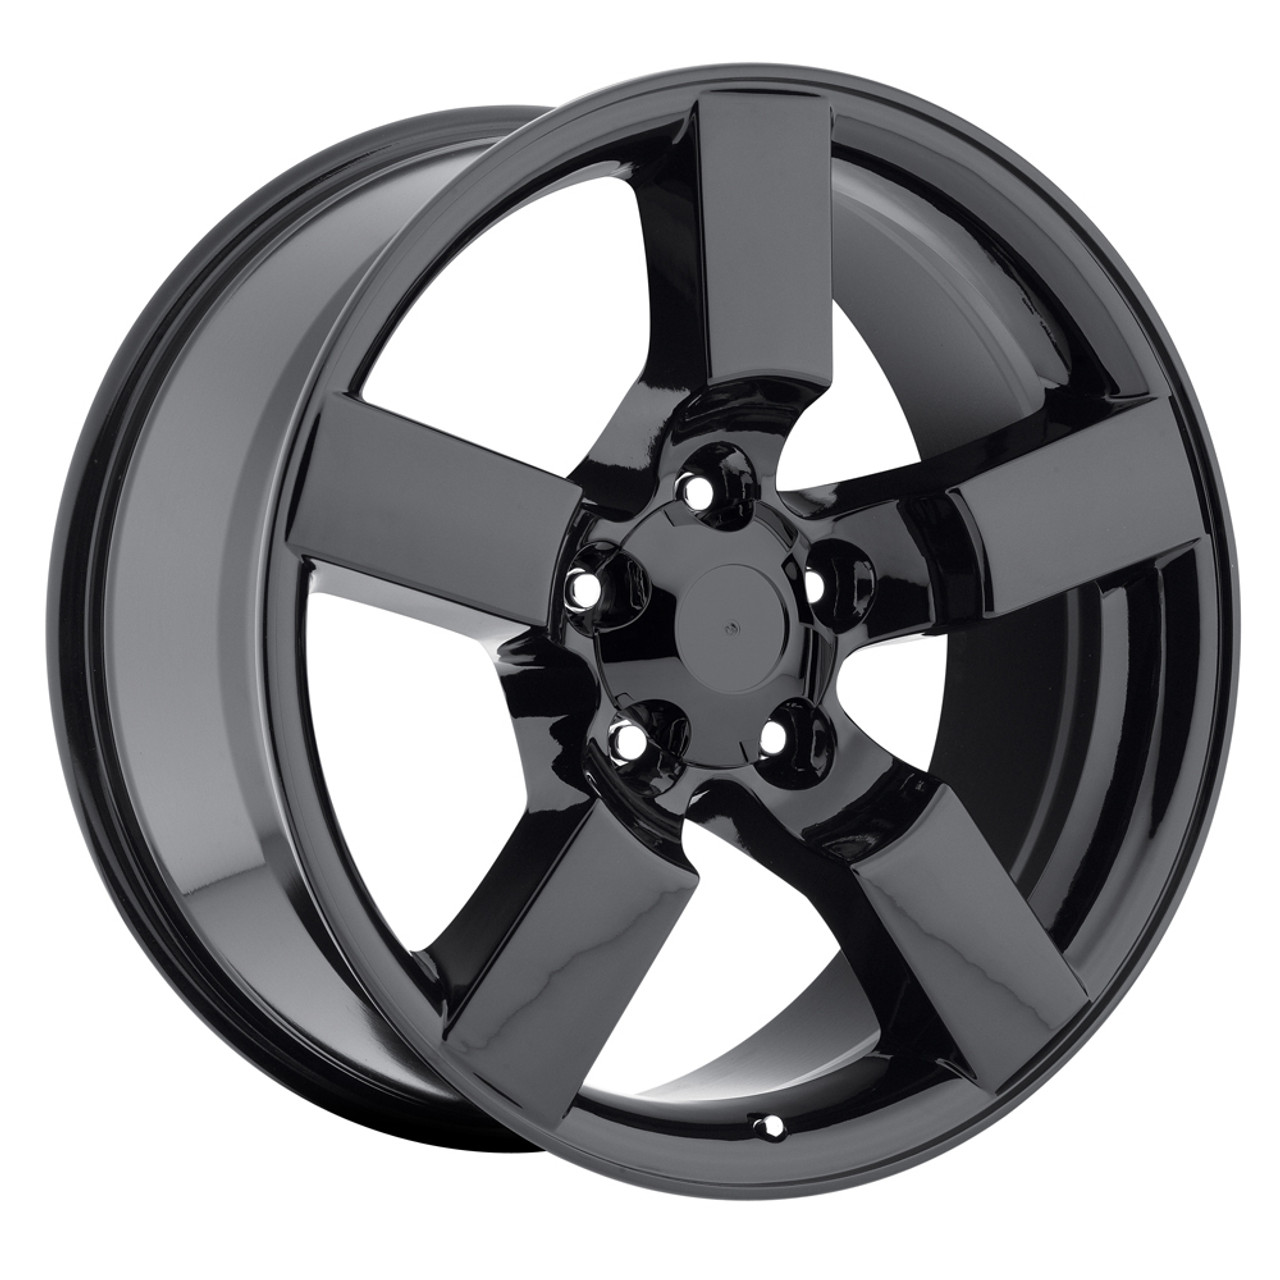 Ford F150 Rims >> 20 Ford F150 Lightning Expedition Alloy Wheels Gloss Black Set Of 4 20x9 Rims